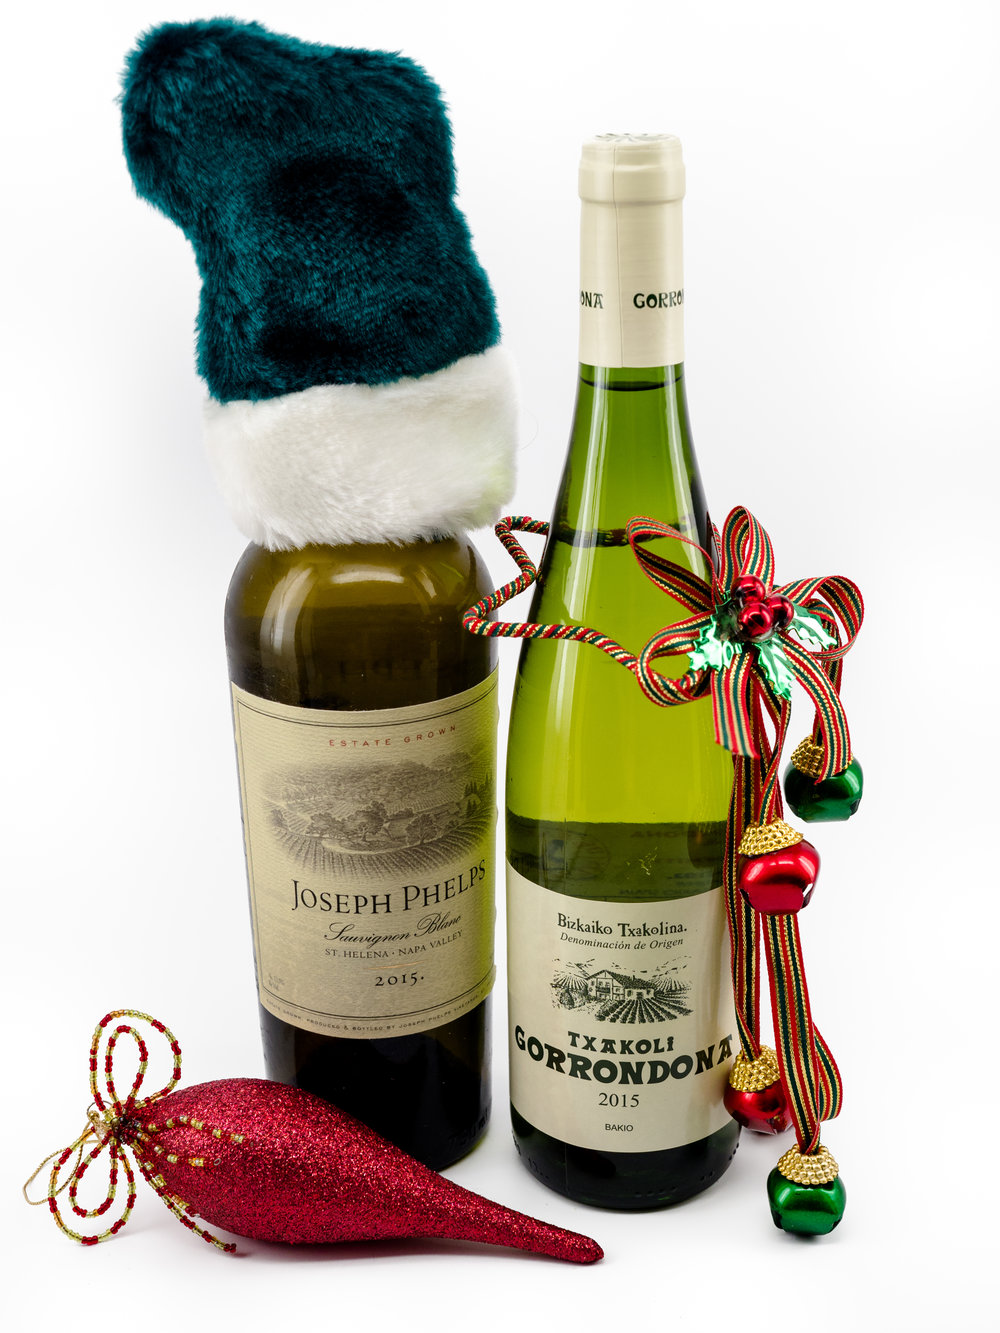 Musings by the Glass - Mele Kalikimaka - Hawaiian Christmas Music and Wine Pairings - Wine and Christmas!